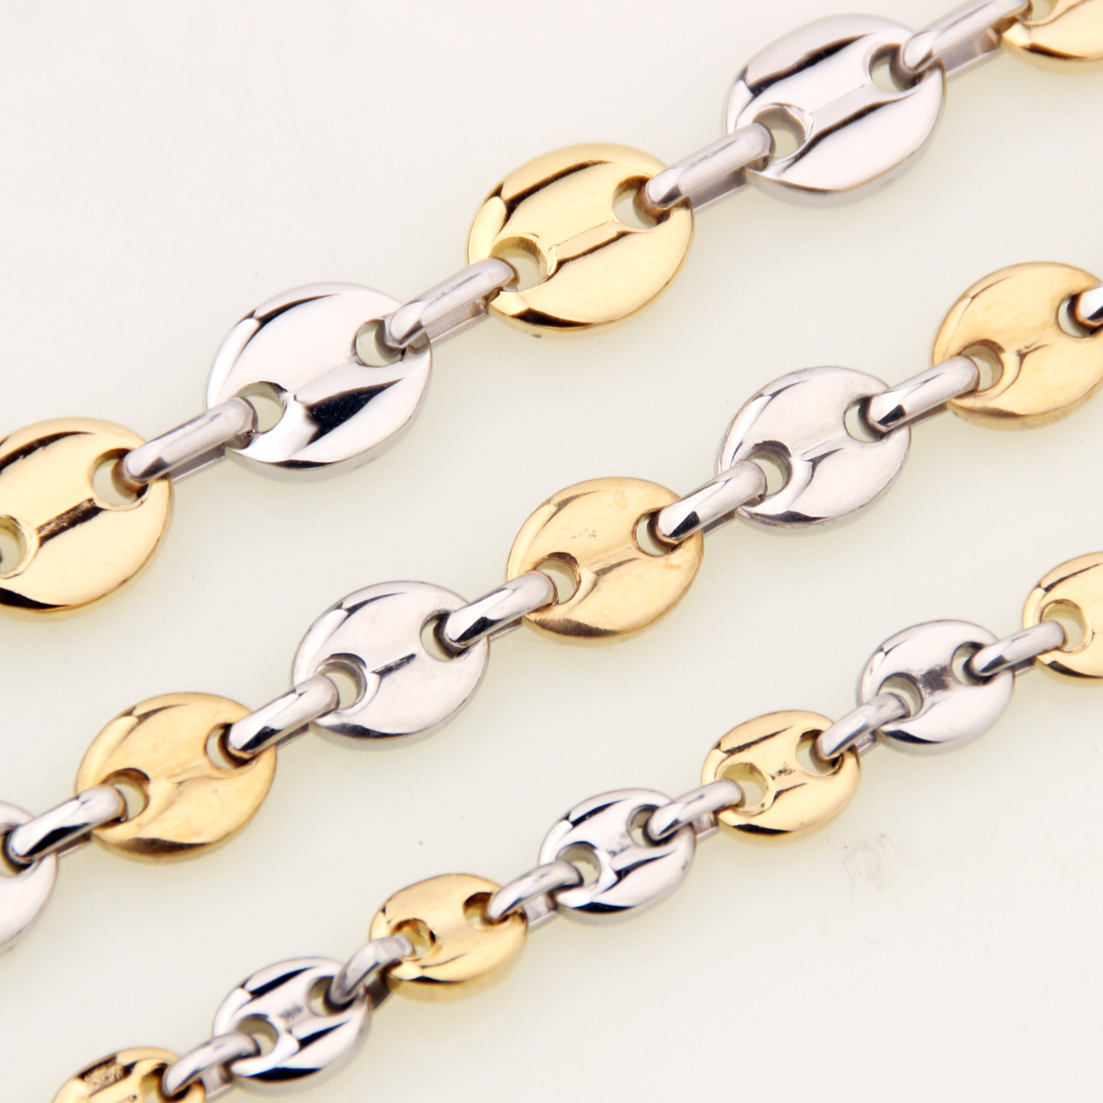 7 quot 40 quot Long Choose Brand New 100 Stainless Steel 7 9 11mm Men 39 s Coffee Bean Necklace Silver Gold Mens Necklace in Chain Necklaces from Jewelry amp Accessories